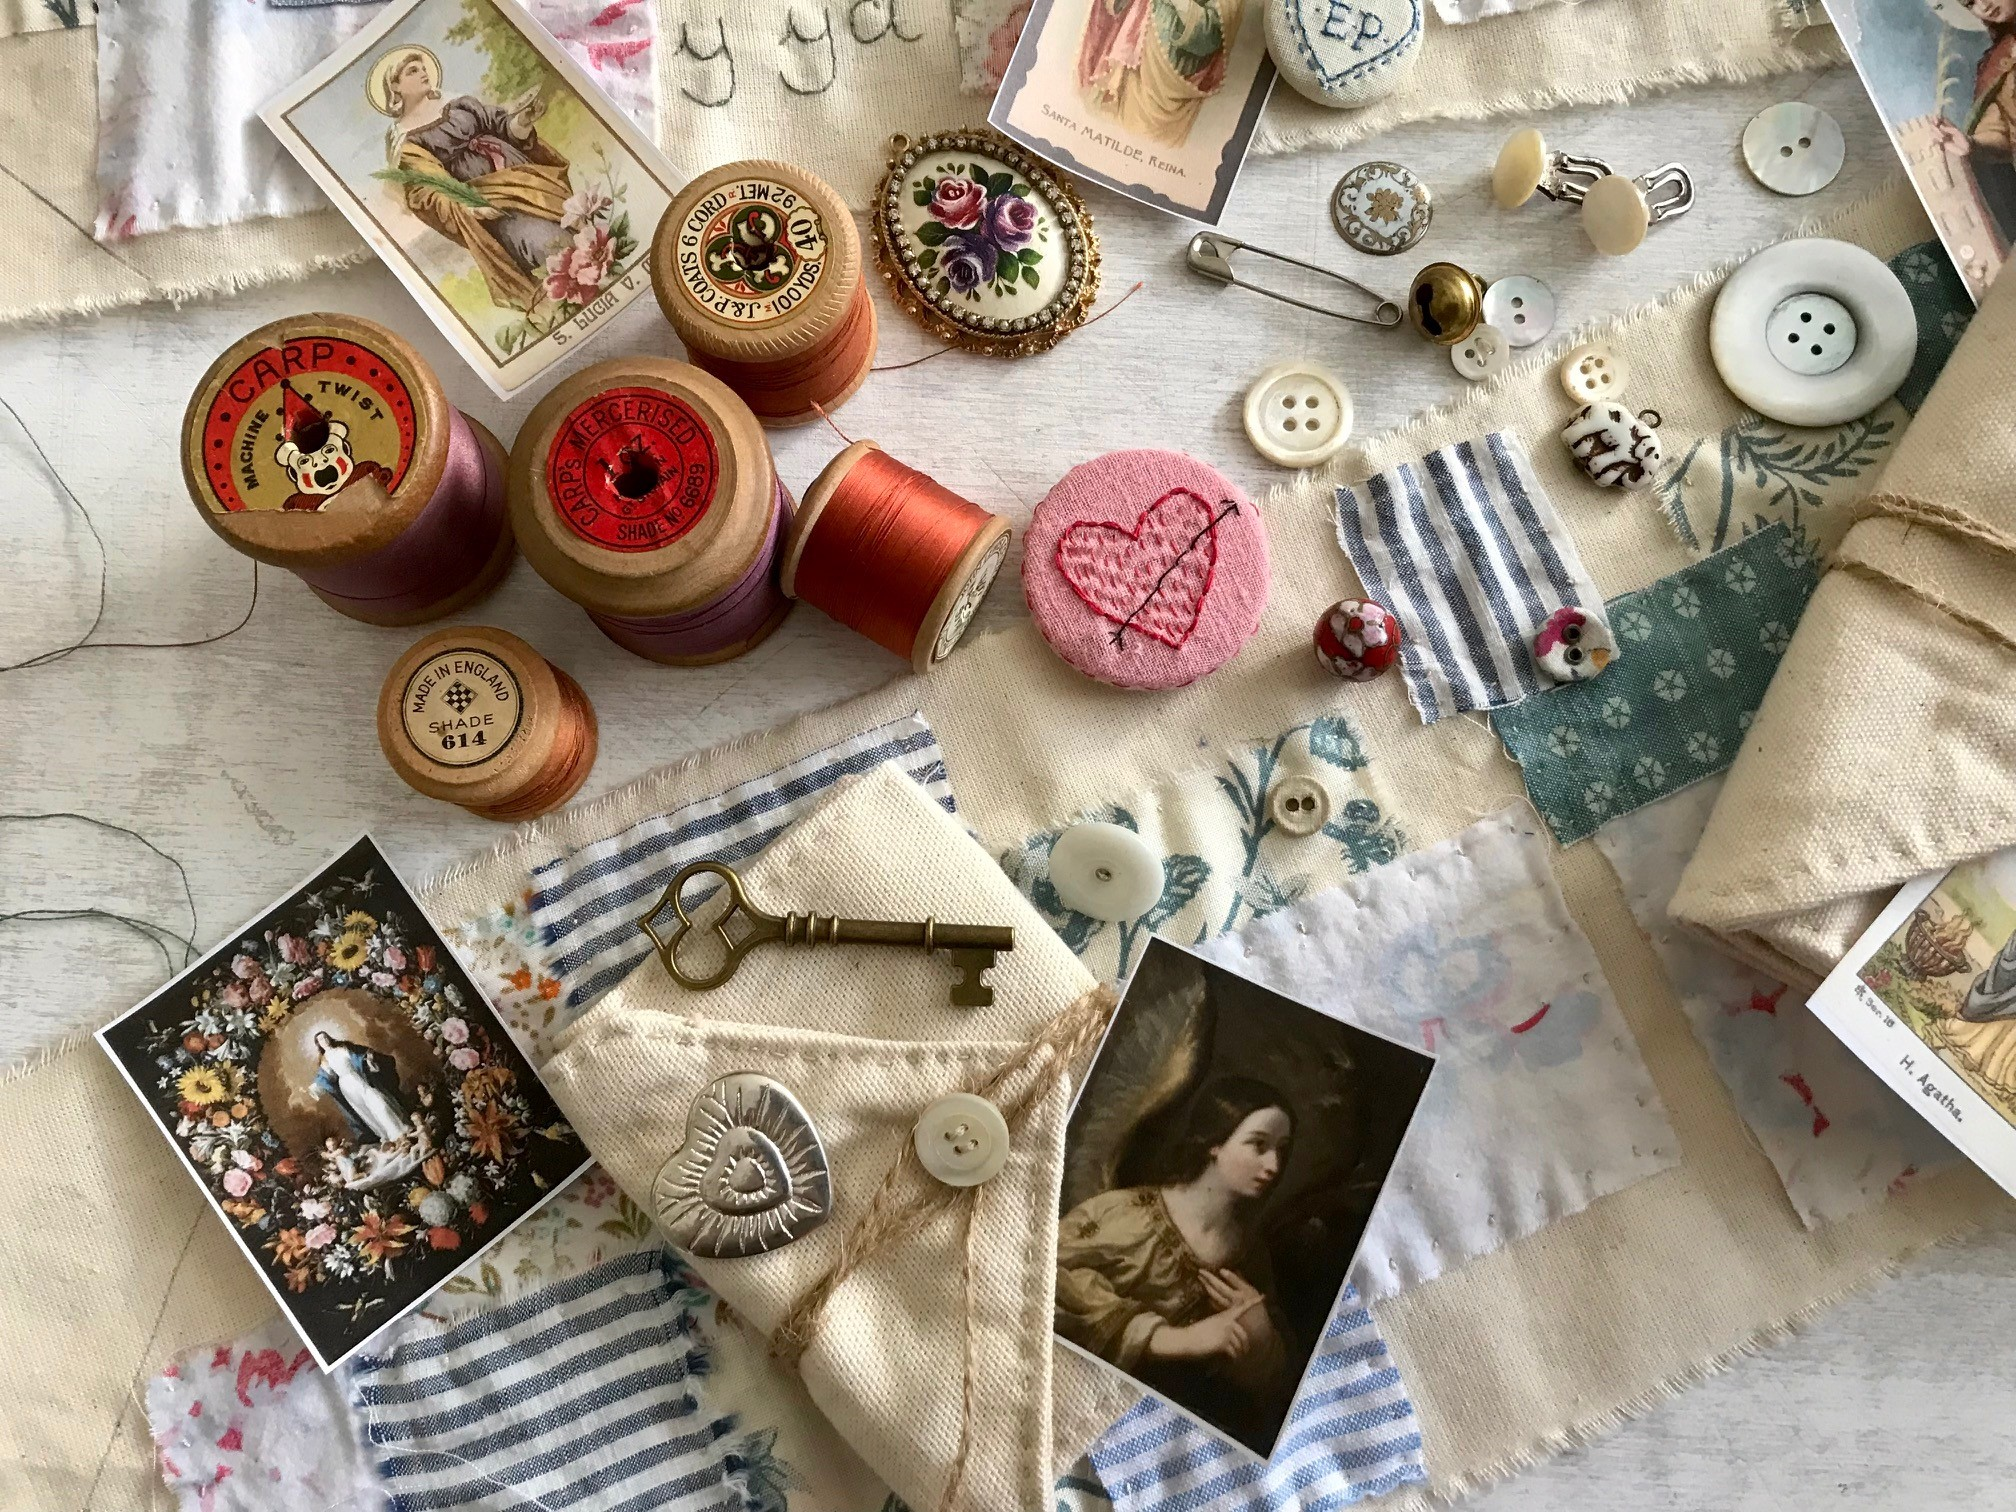 mondern colour photograph of a flatlay showing a variety of haberdashery items such as vintage cotton reels, buttons, fabric etc